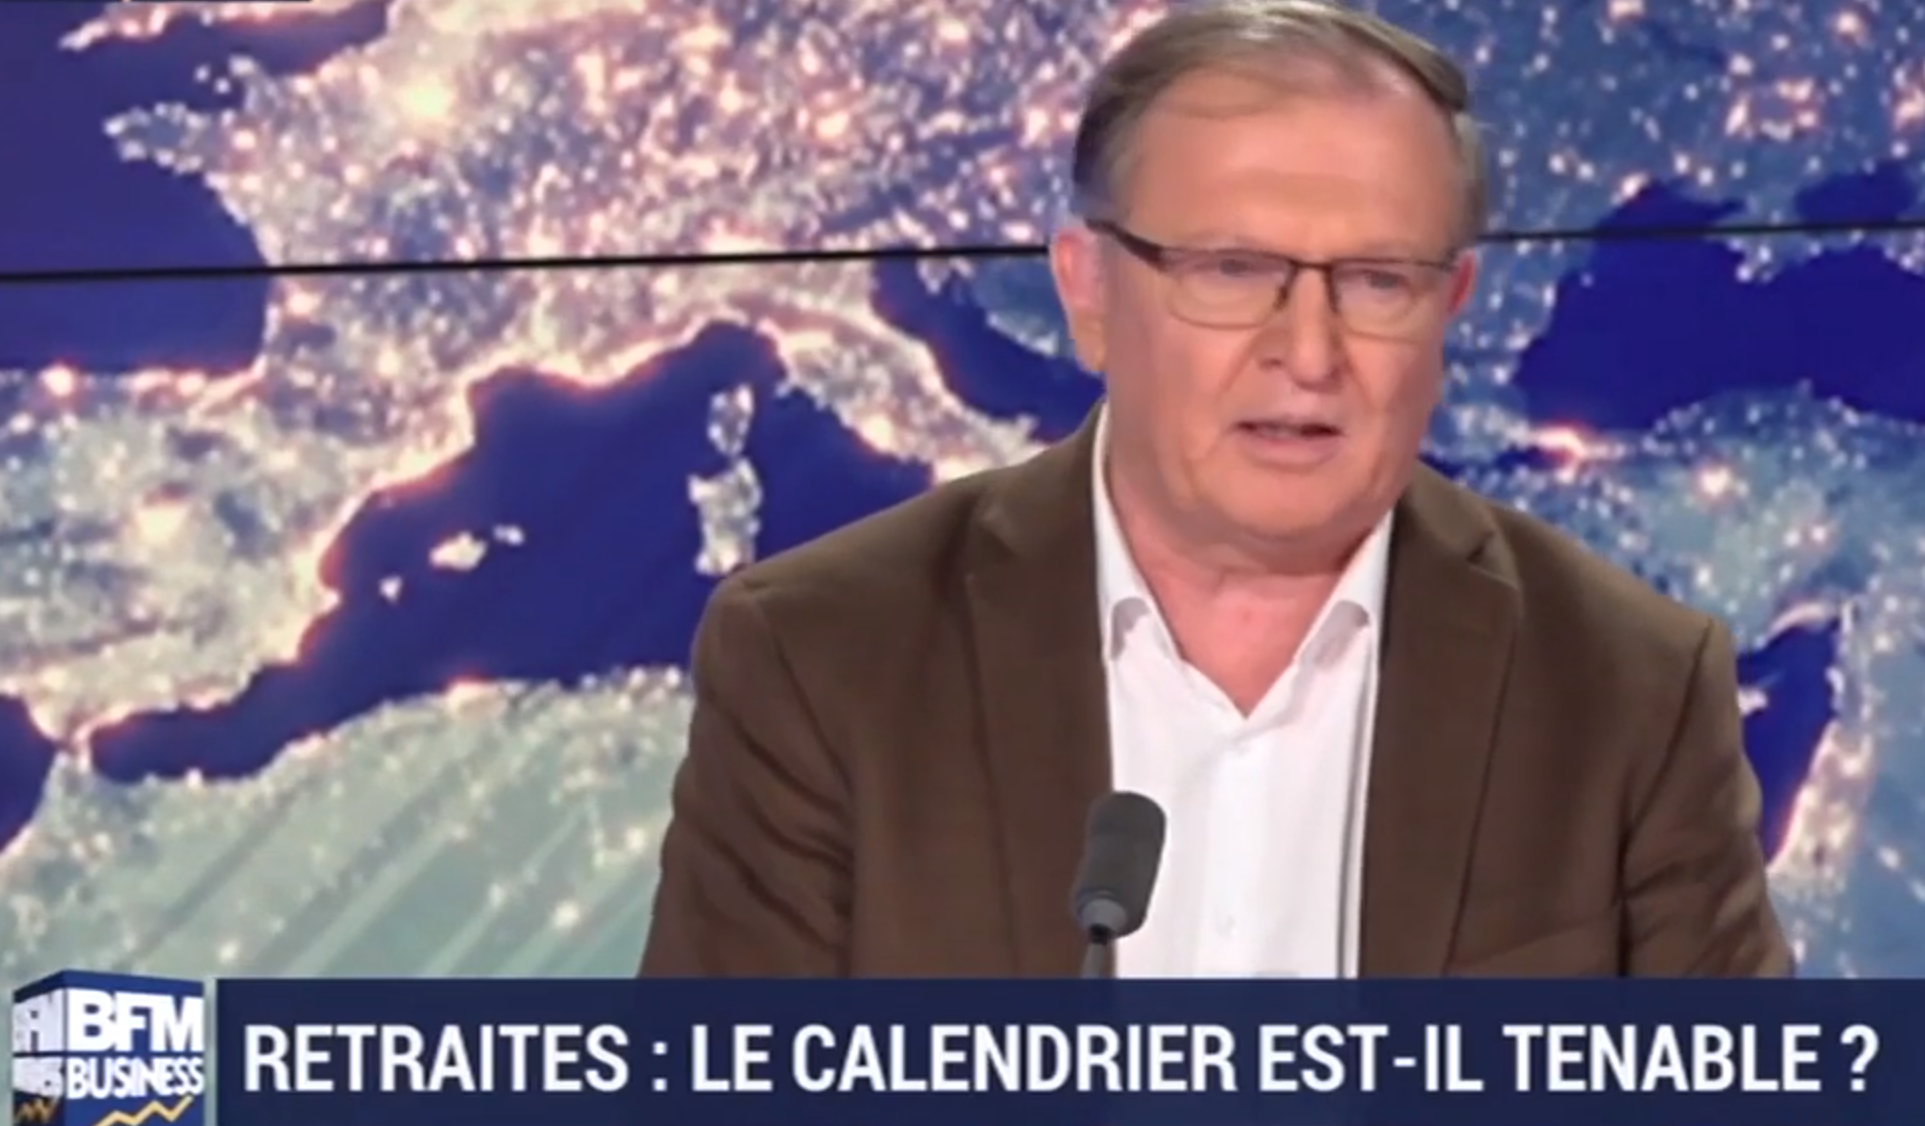 Retraites : Interview de Pierre Roger de la CFE-CGC